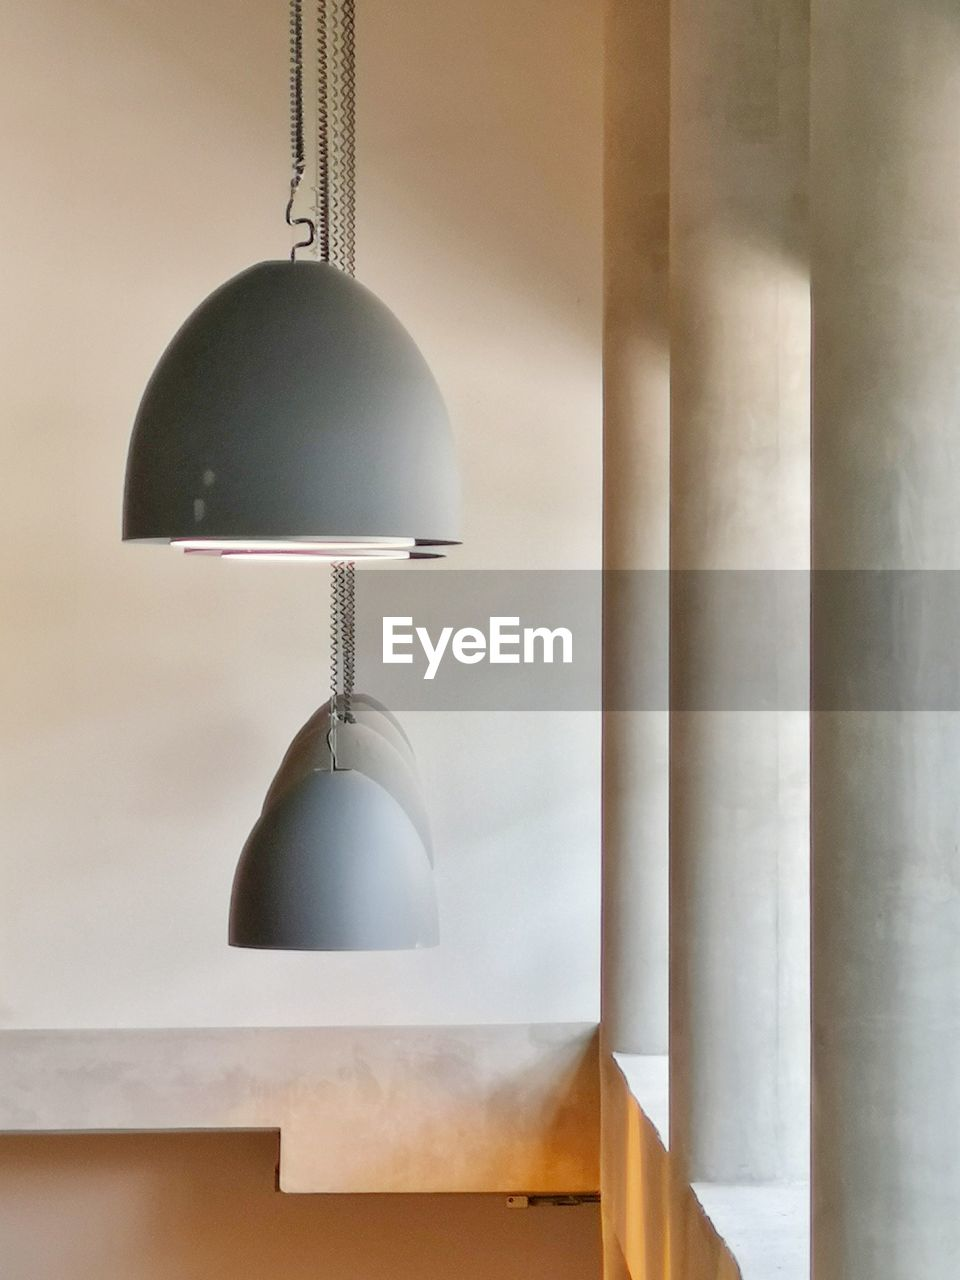 hanging, indoors, lighting equipment, pendant light, no people, electric lamp, wall - building feature, light, illuminated, electric light, decoration, white color, electricity, home interior, metal, close-up, lamp shade, ceiling, design, day, light fixture